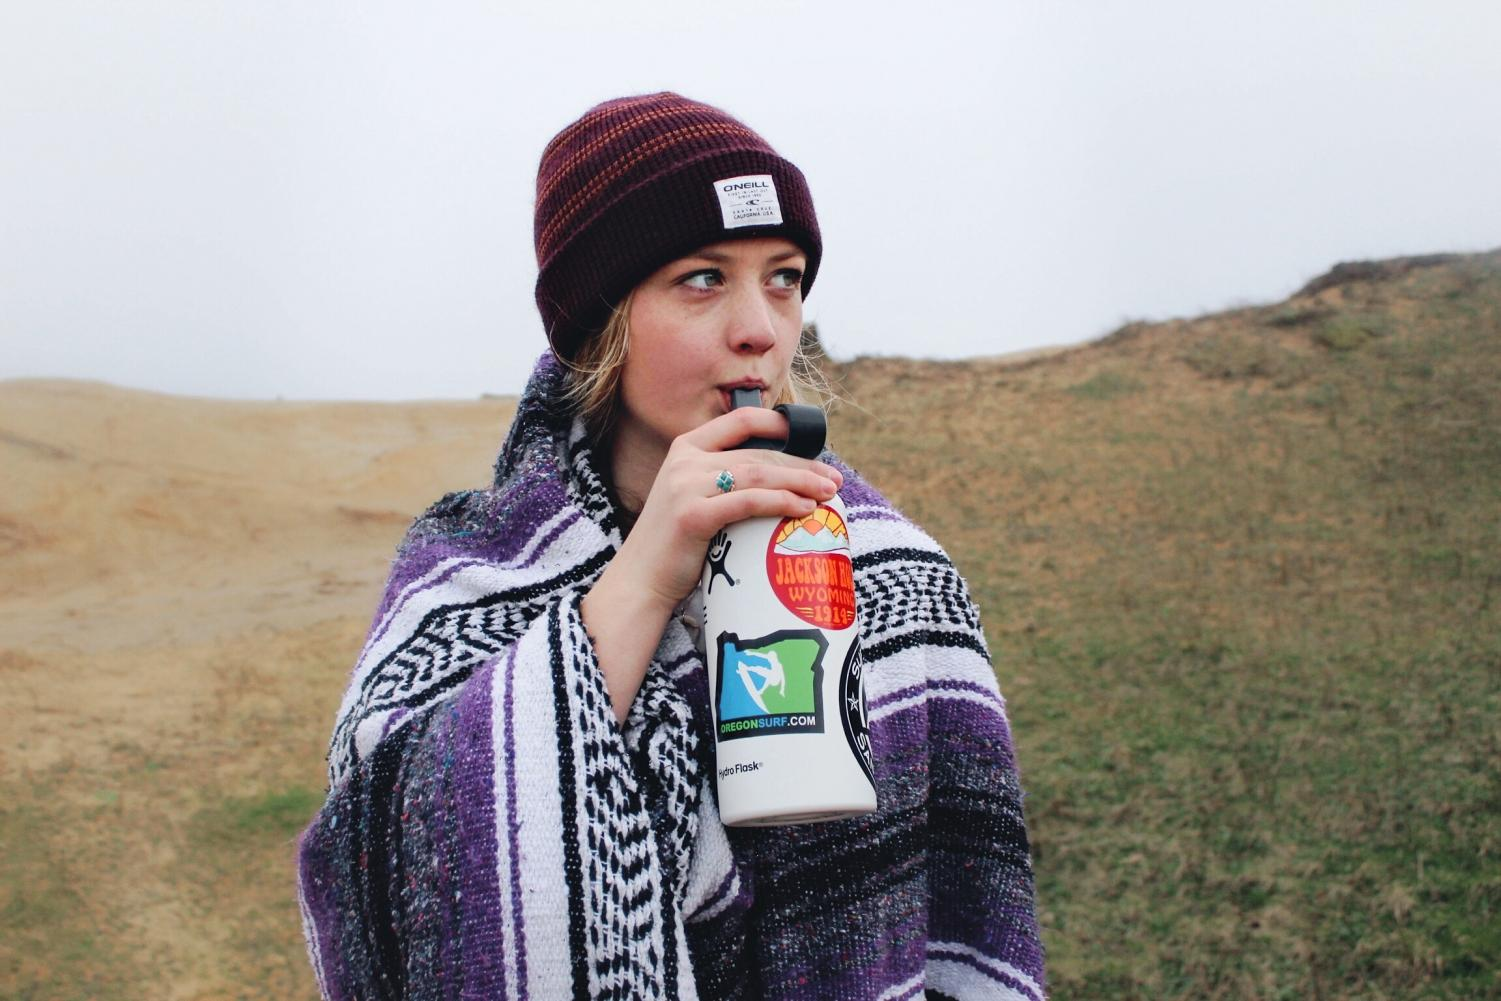 A VSCO girl hydrates while enjoying nature.